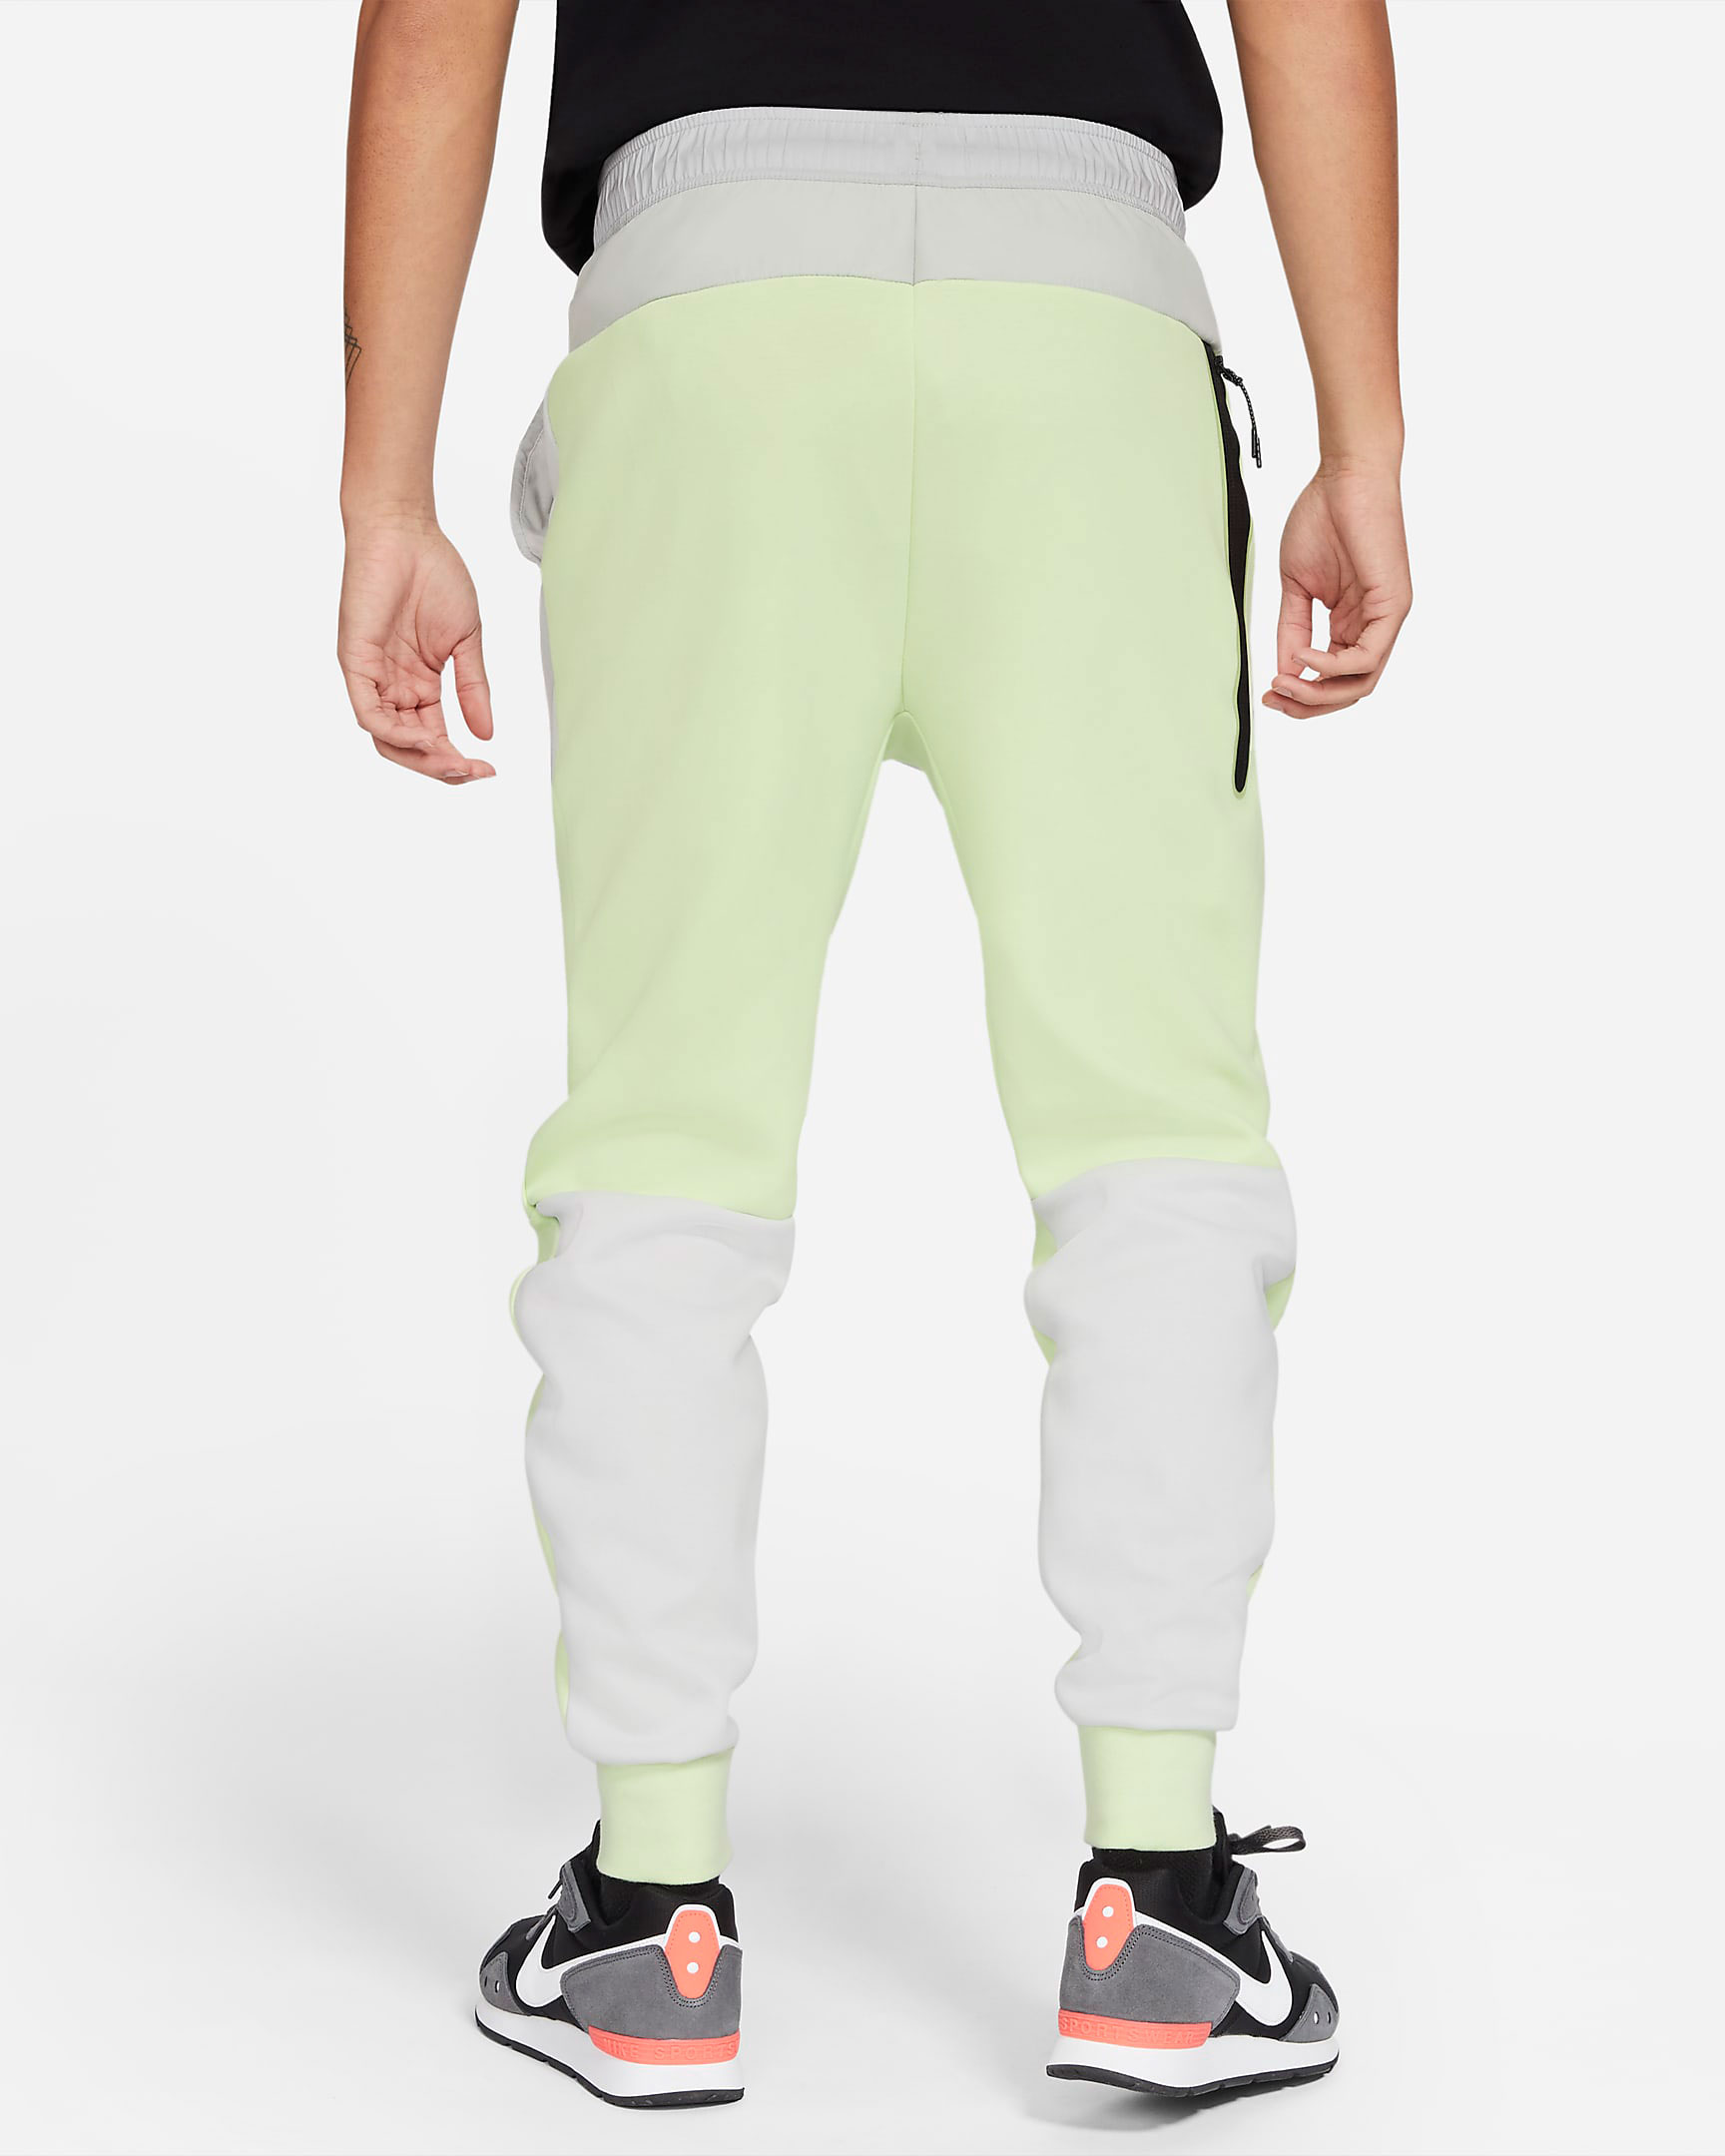 nike-sportswear-light-liquid-lime-grey-tech-fleece-joggers-2